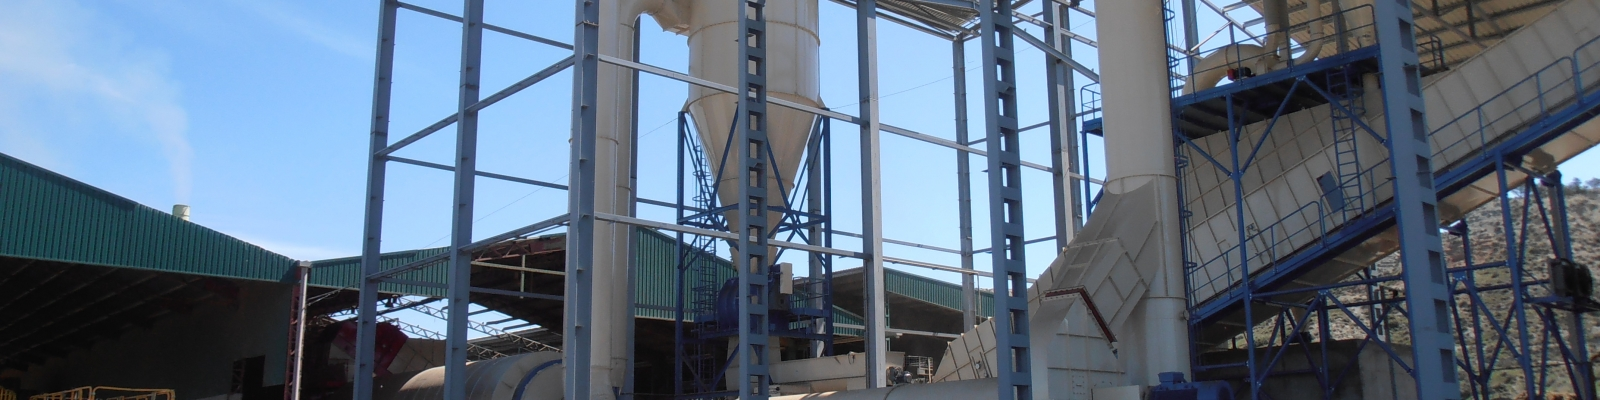 The processing of lucerne into feed pellets